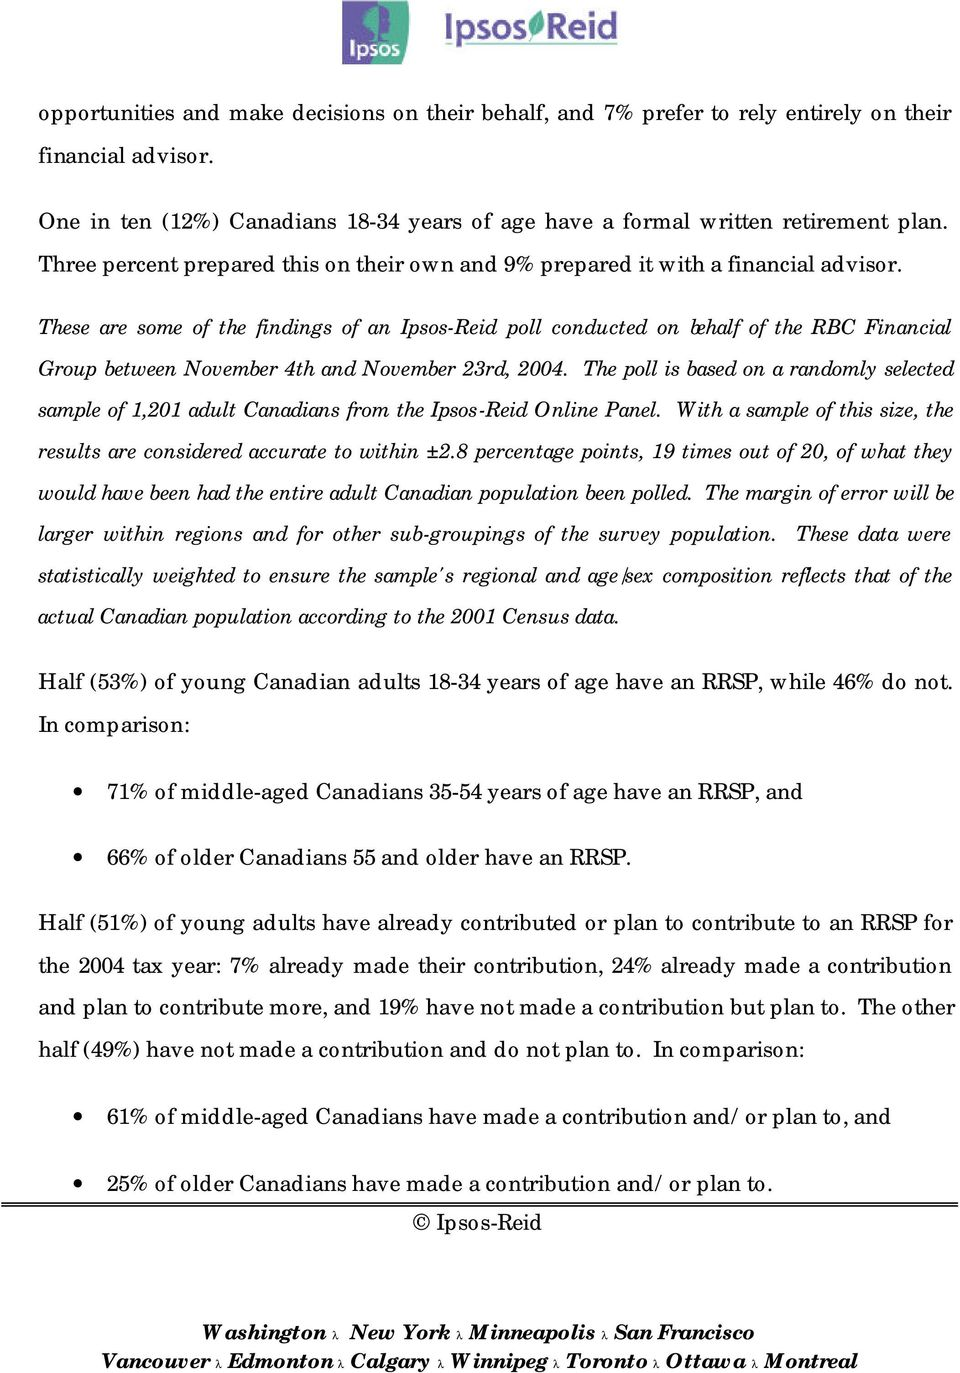 These are some of the findings of an Ipsos-Reid poll conducted on behalf of the RBC Financial Group between November 4th and November 23rd, 2004.